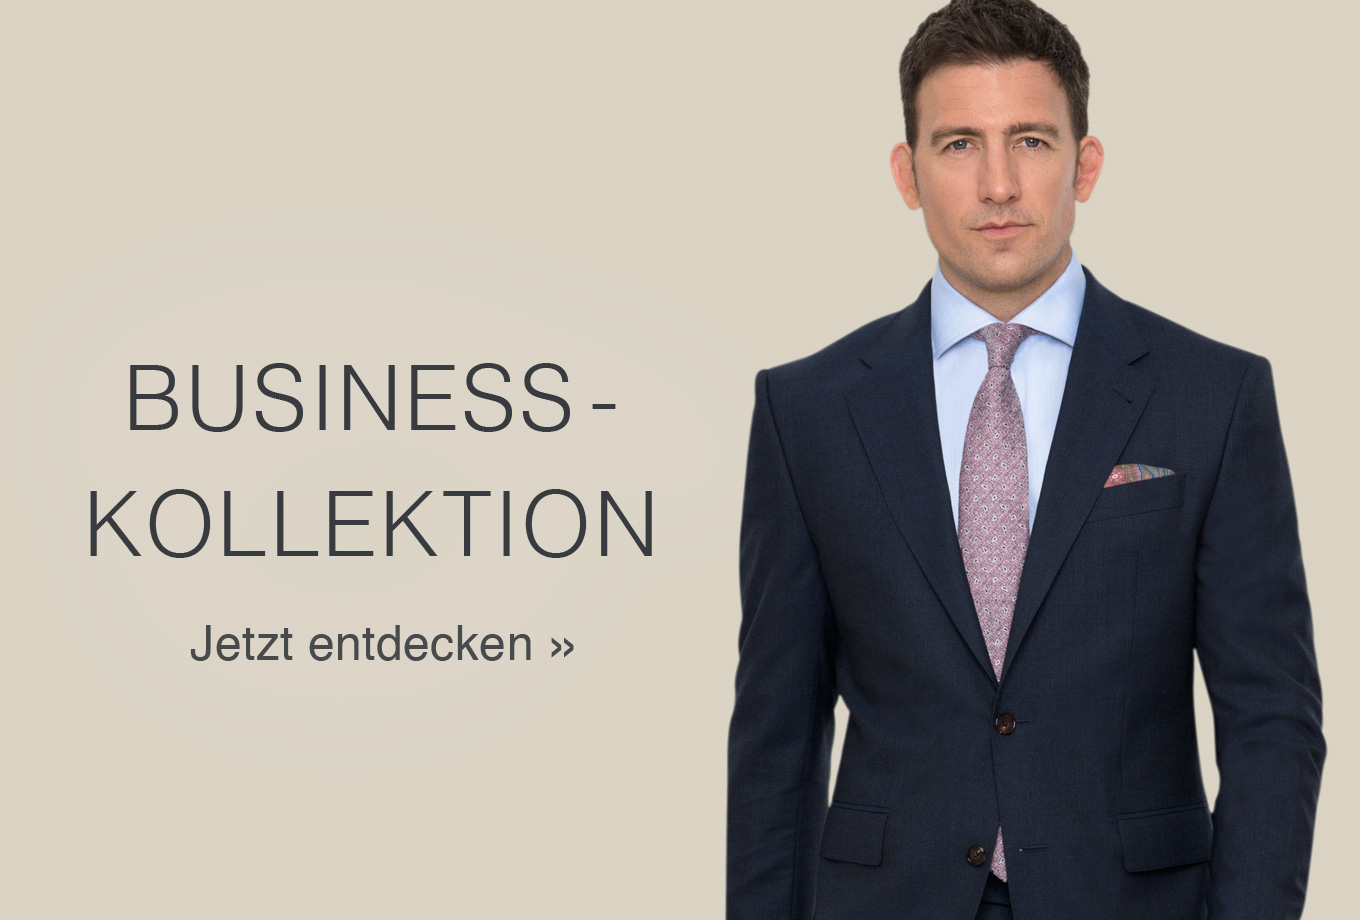 Business Kollektion